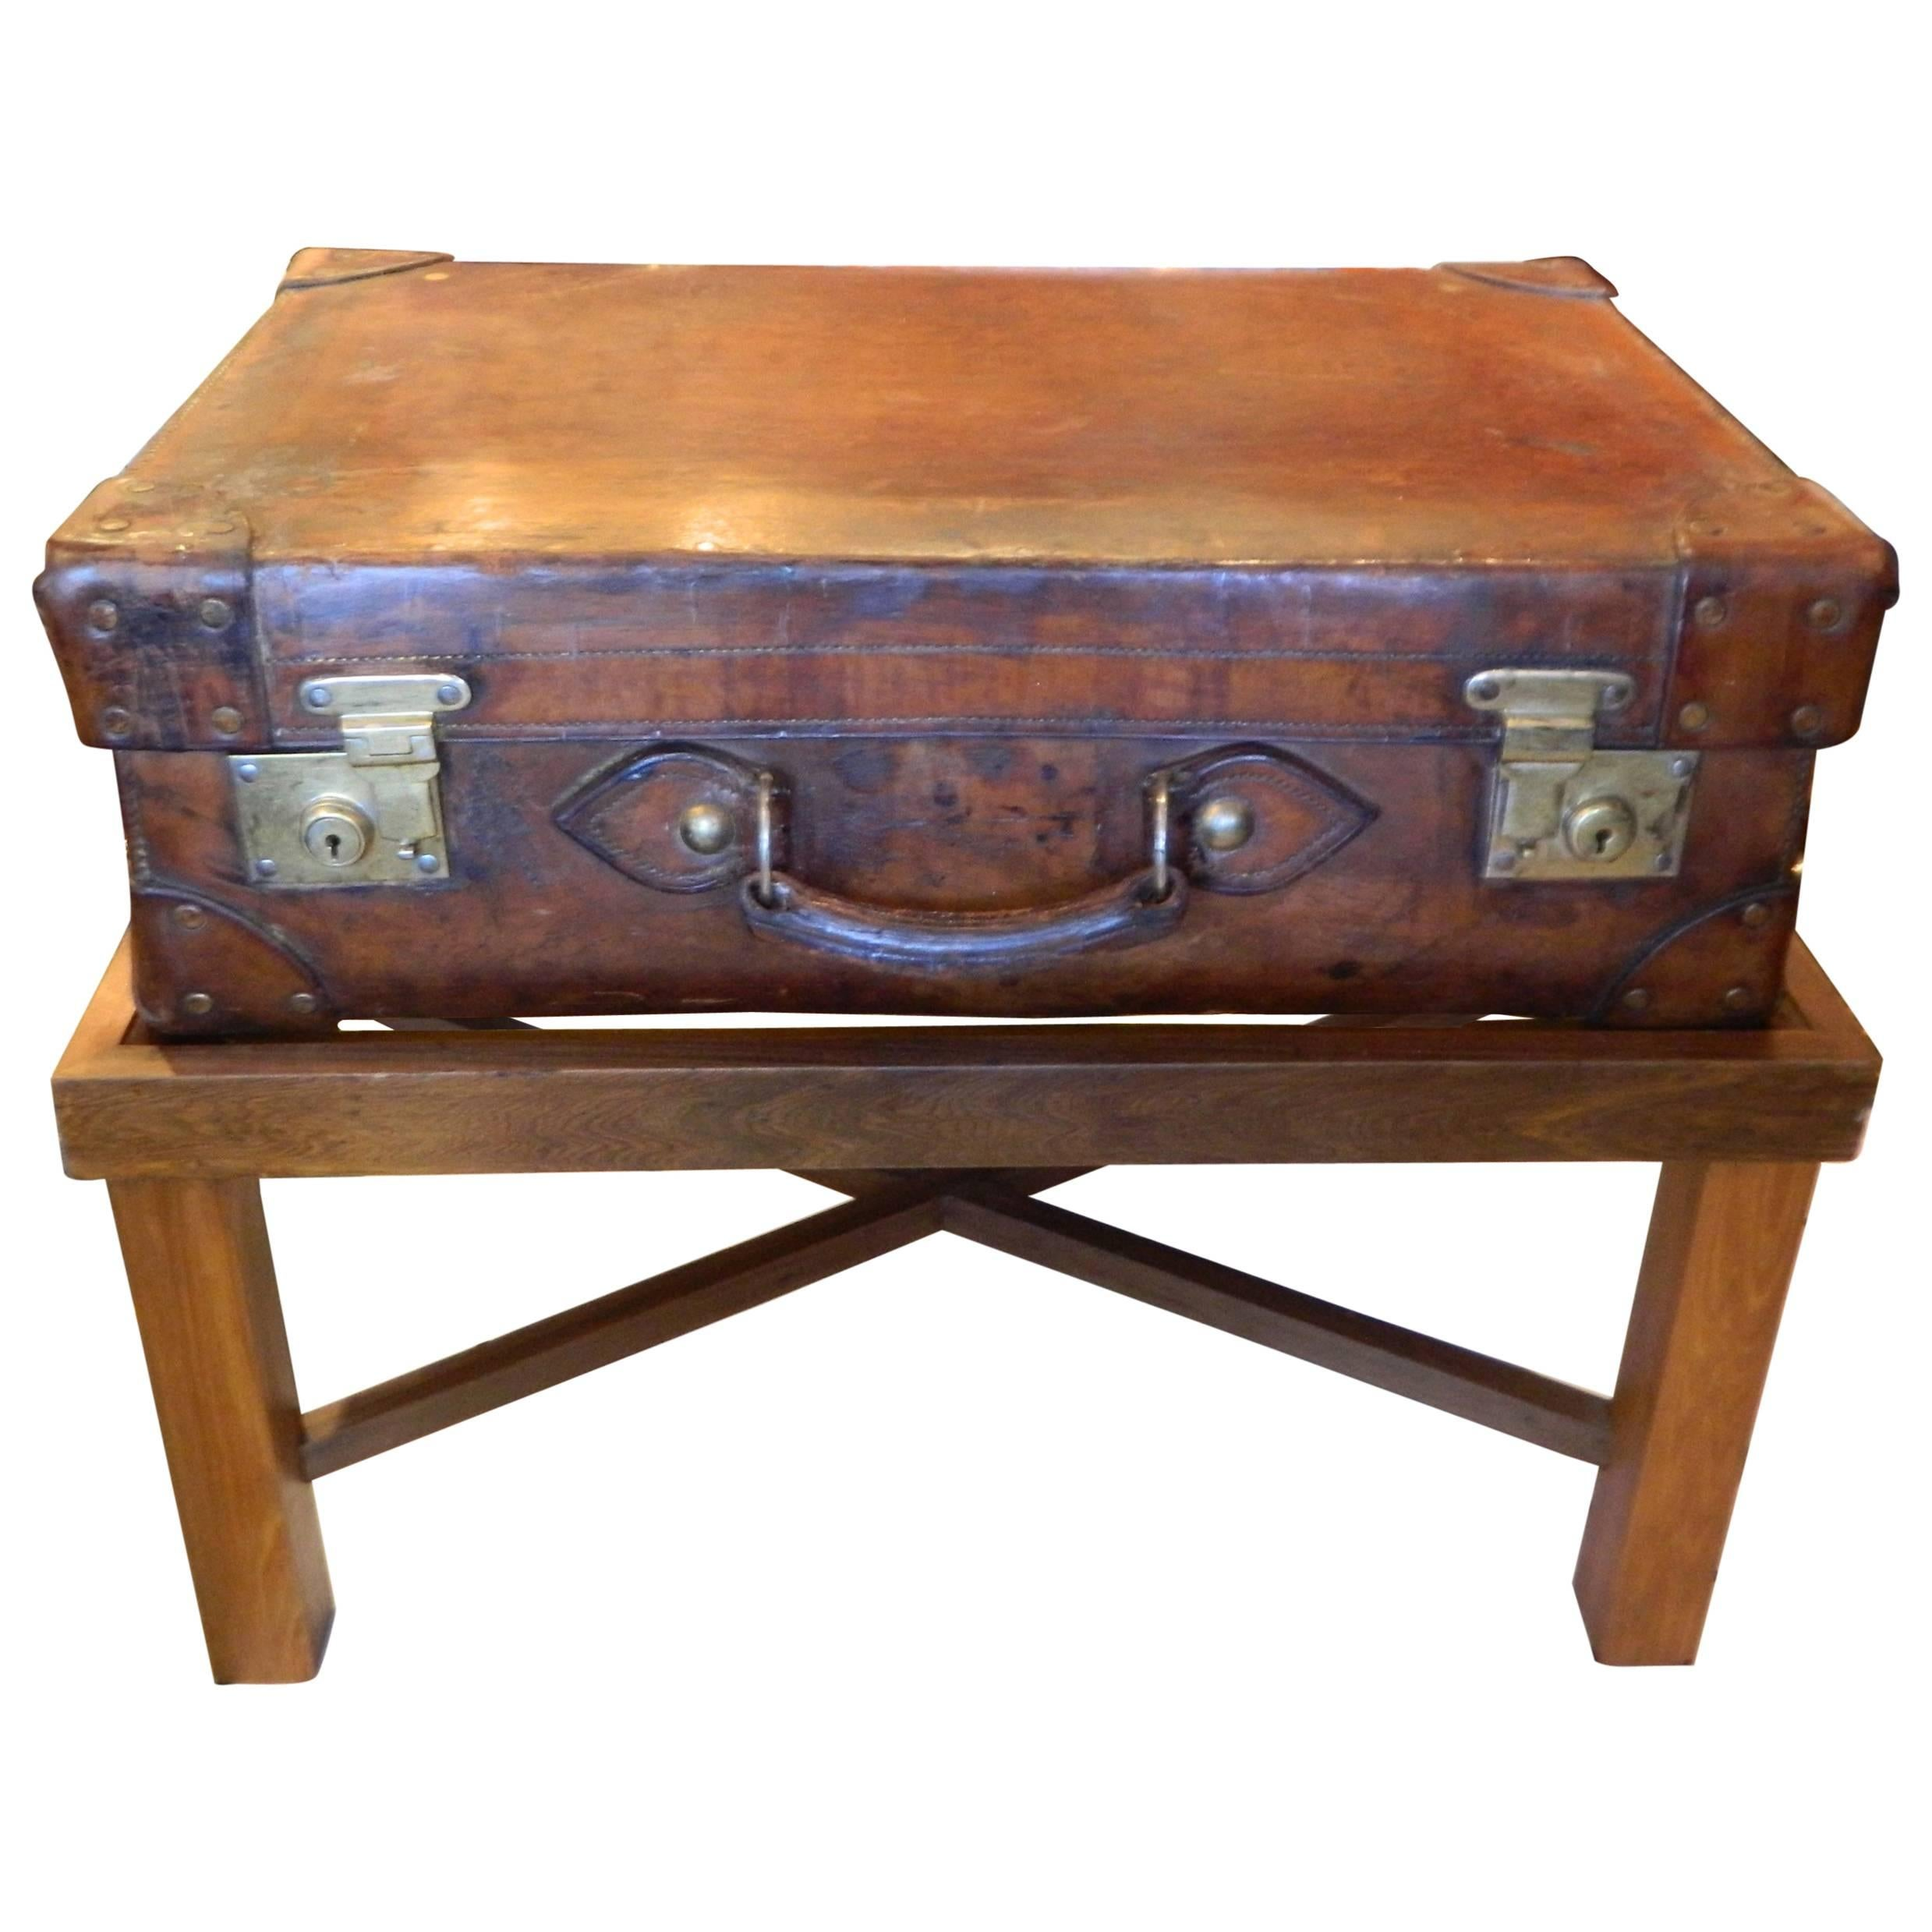 Attirant English Leather Suitcase Adapted As A Coffee Table On Later Stand, 19th  Century For Sale At 1stdibs